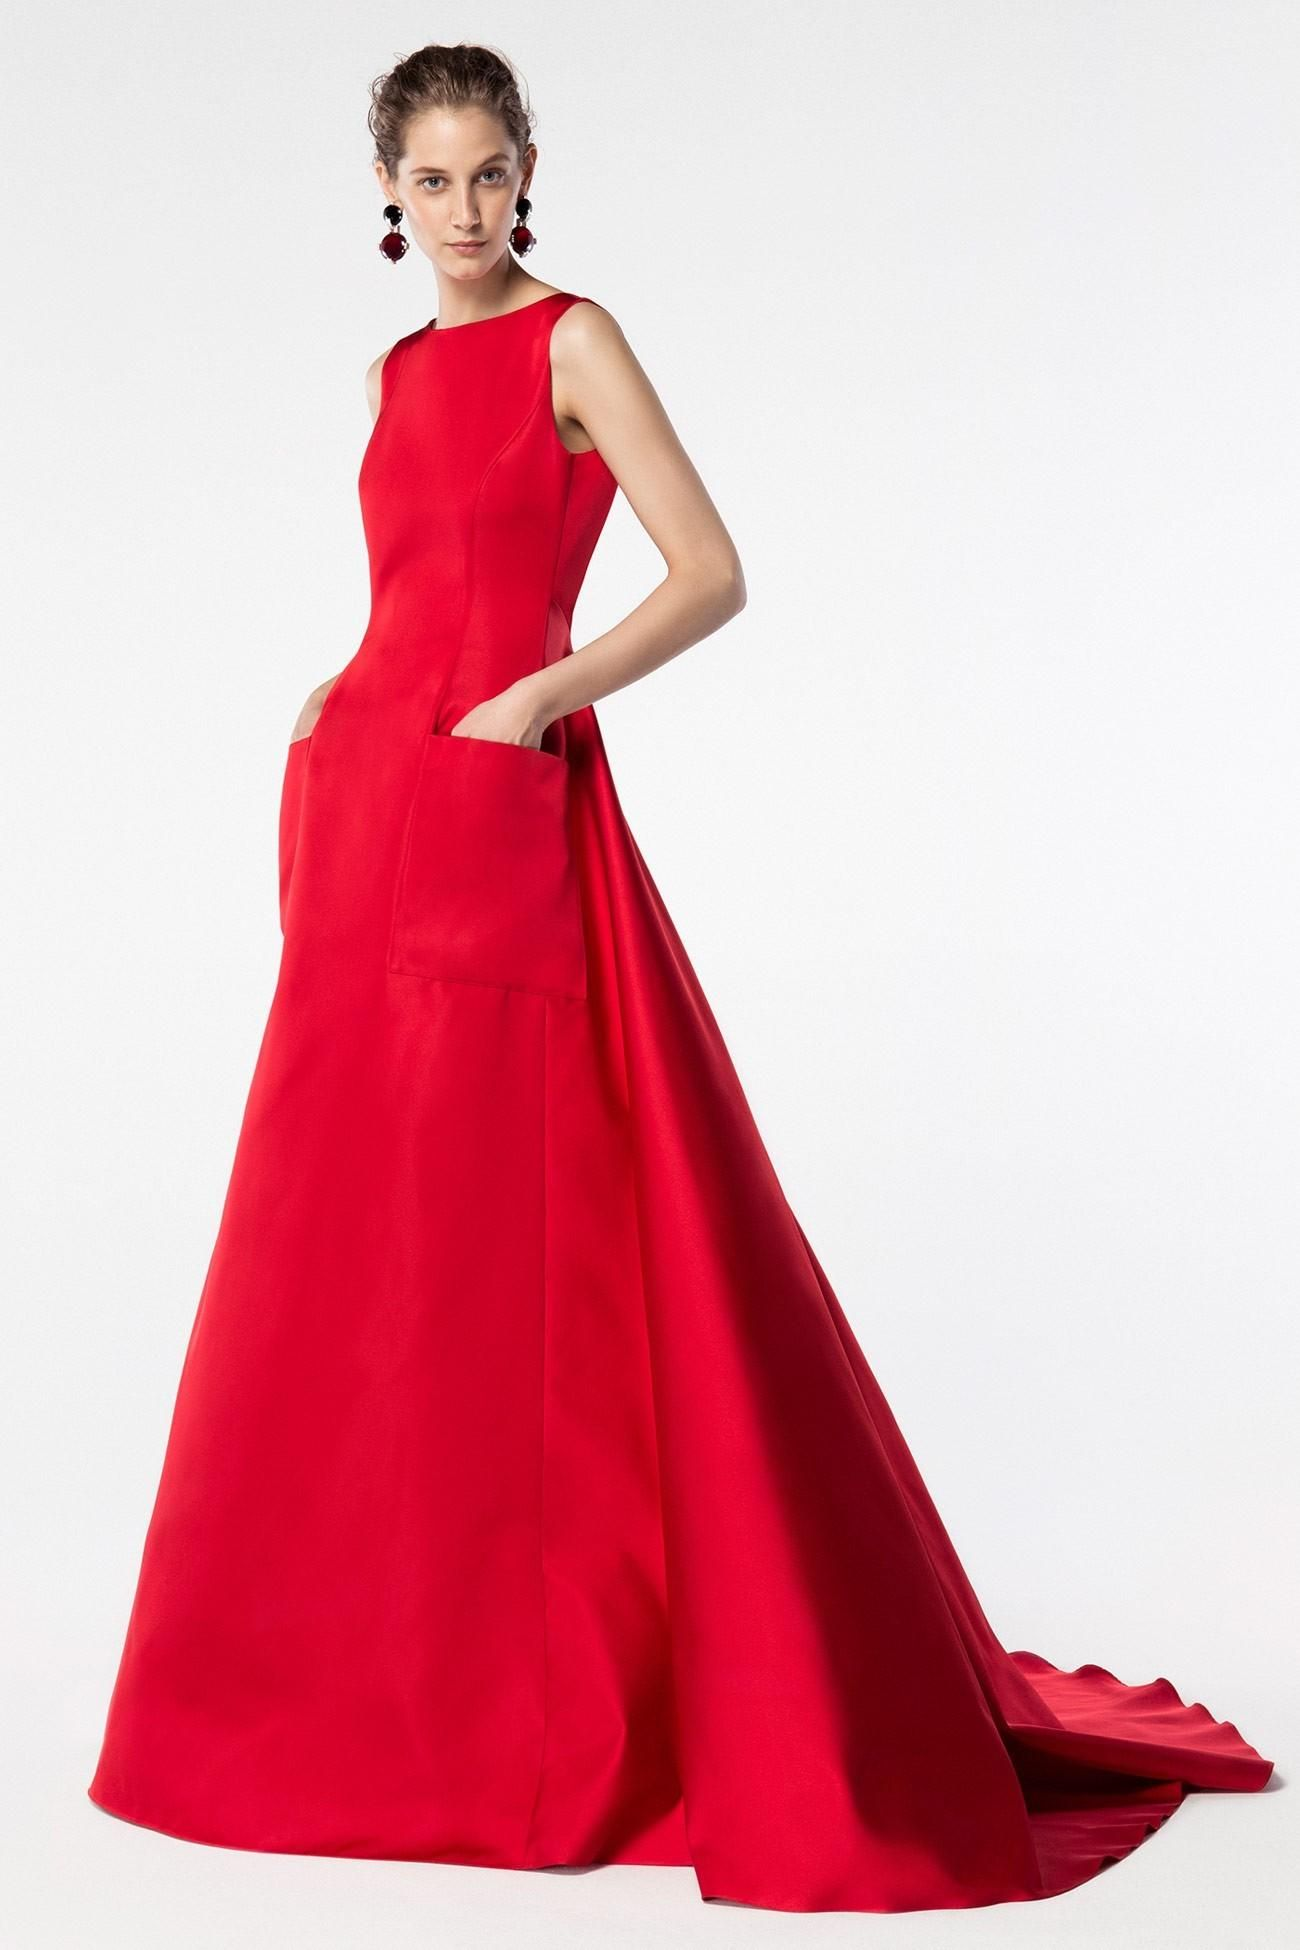 Ch Carolina Herrera Dress As Seen On Lily Aldridge